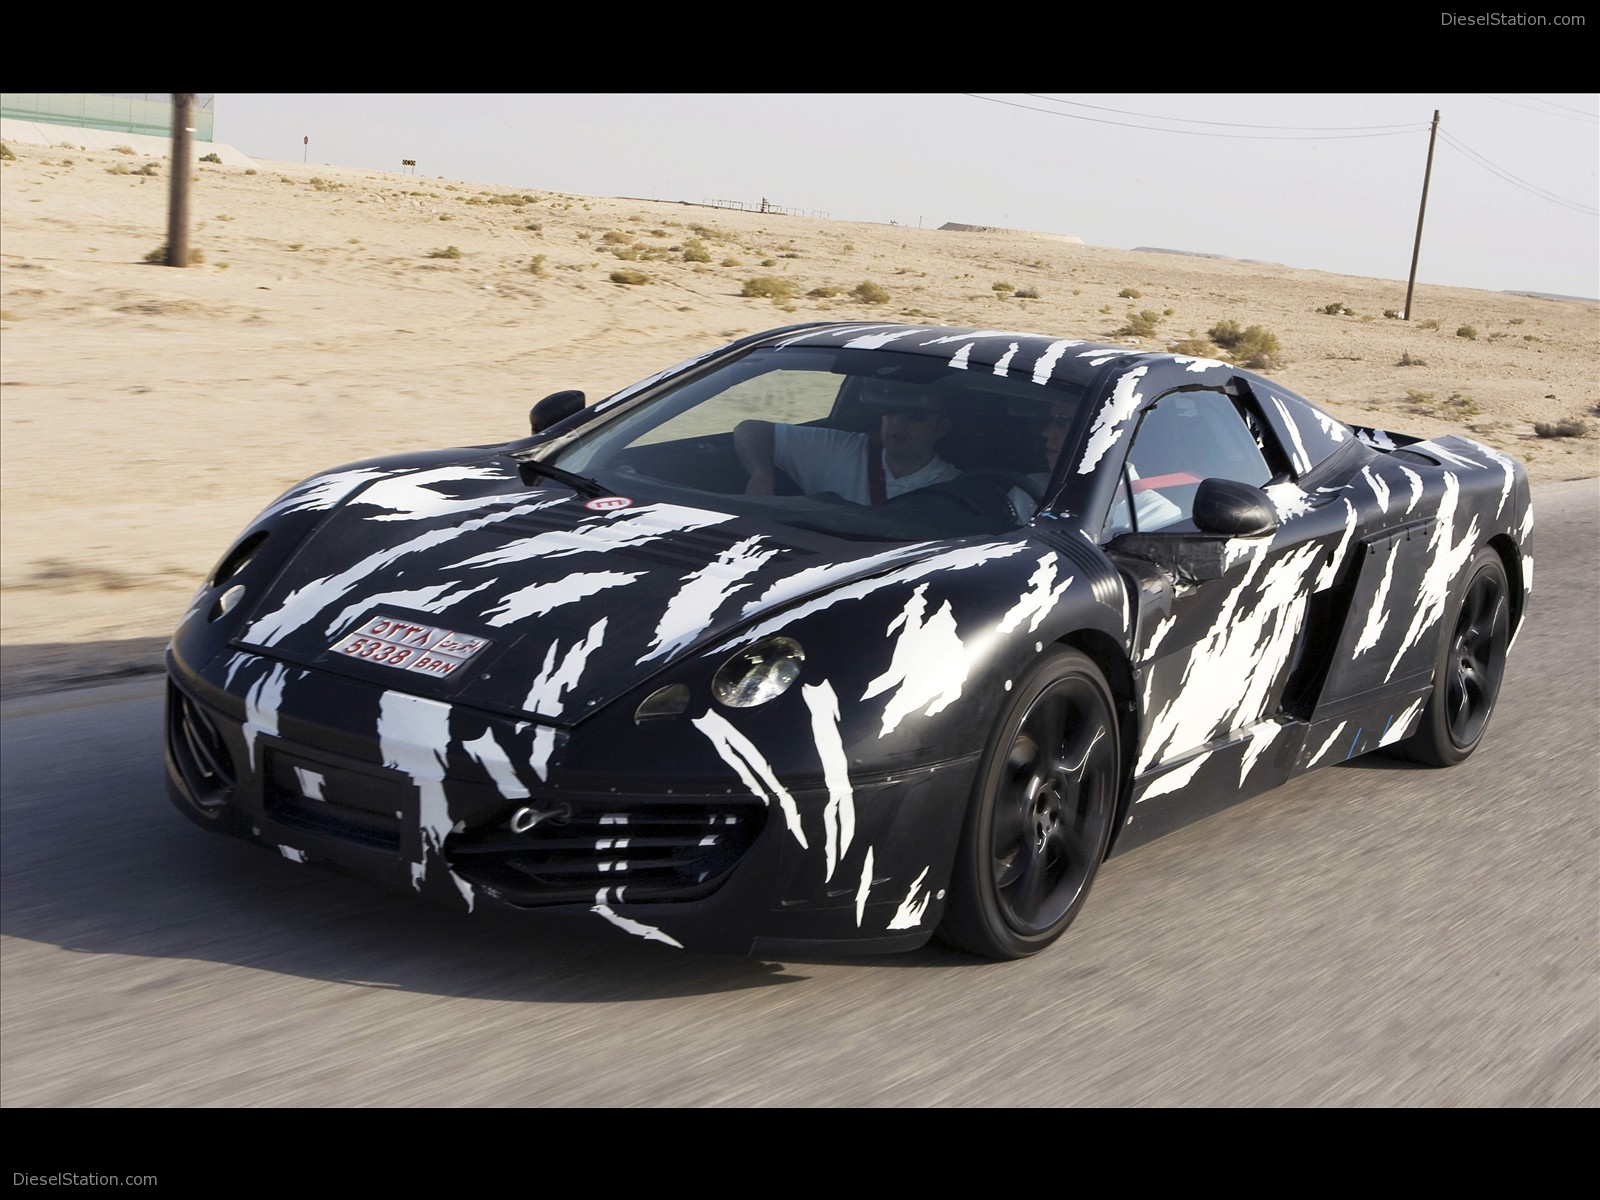 Video Mclaren Mp Xp Exotic Car Wallpapers Of Diesel